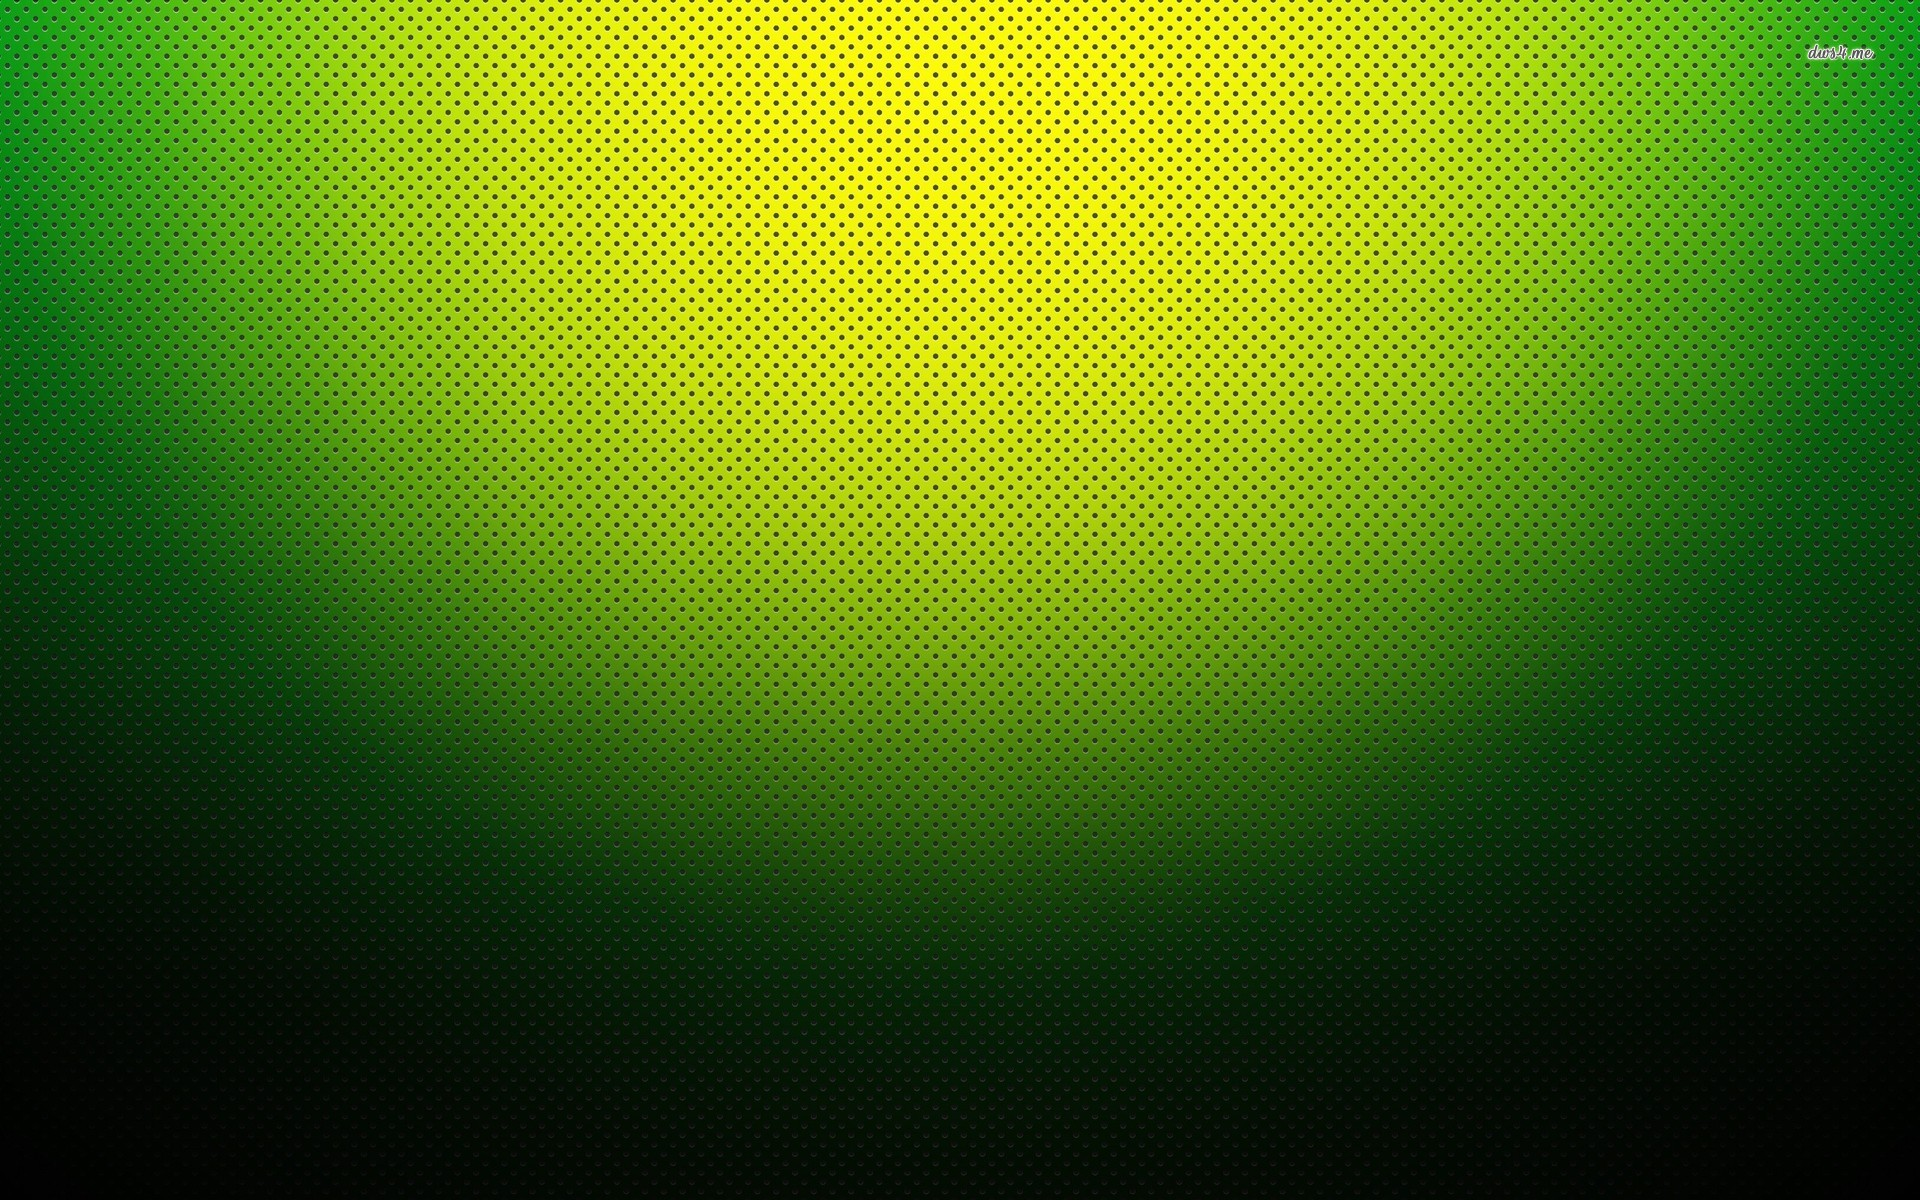 Green perforated metal pattern wallpaper   967978 1920x1200